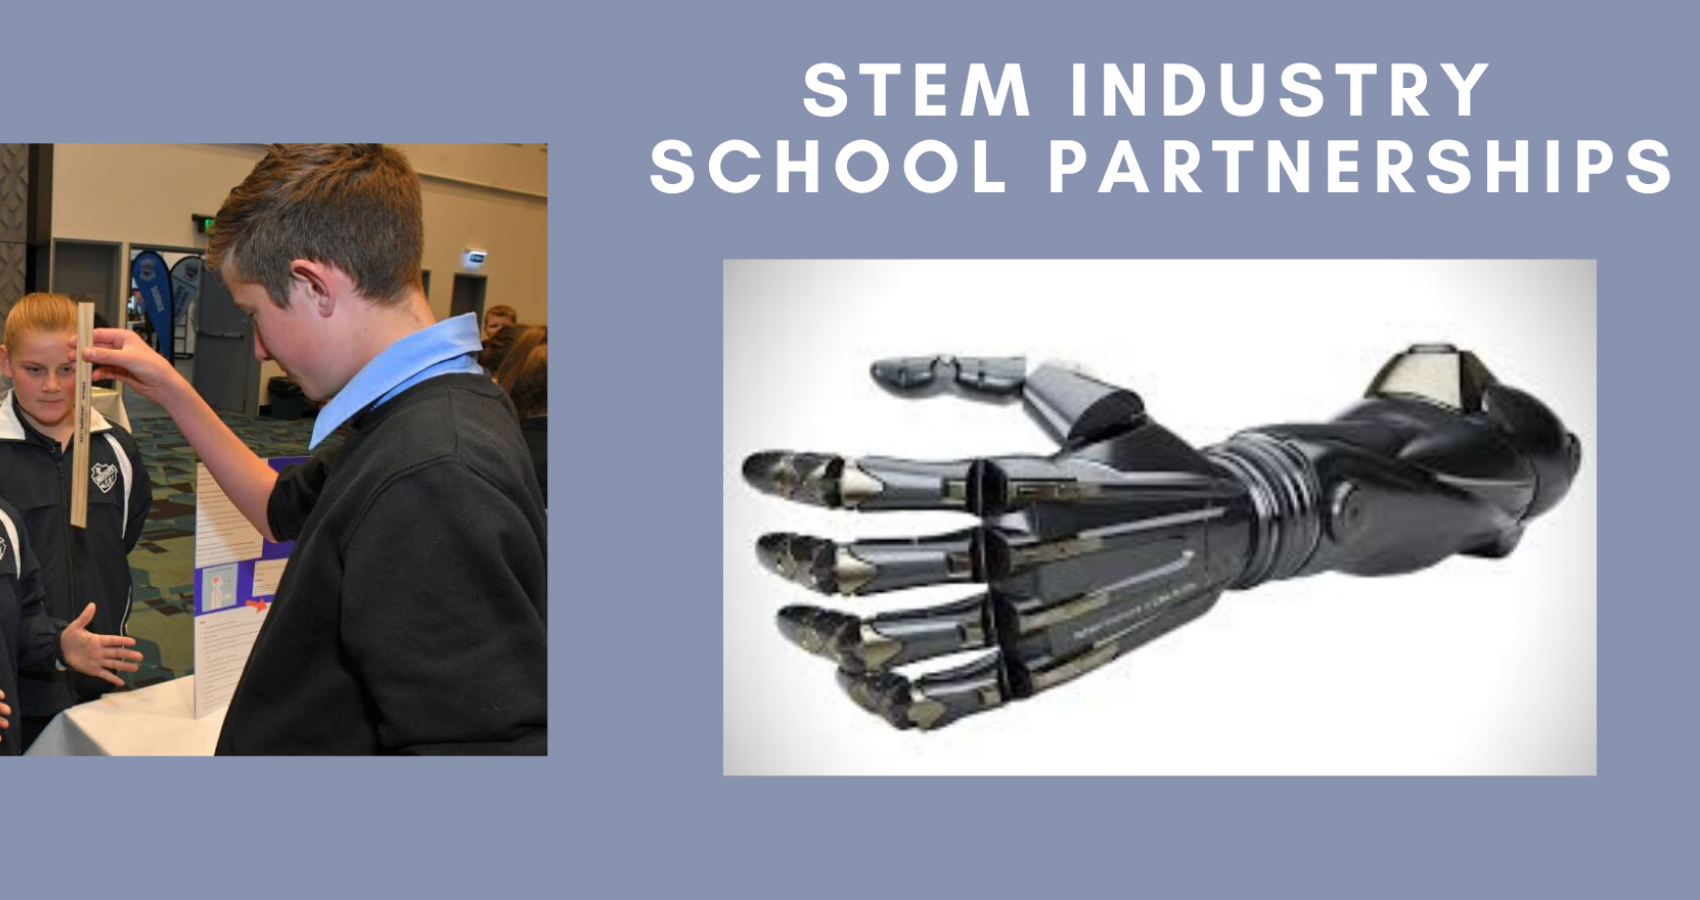 STEM Industry Partnership